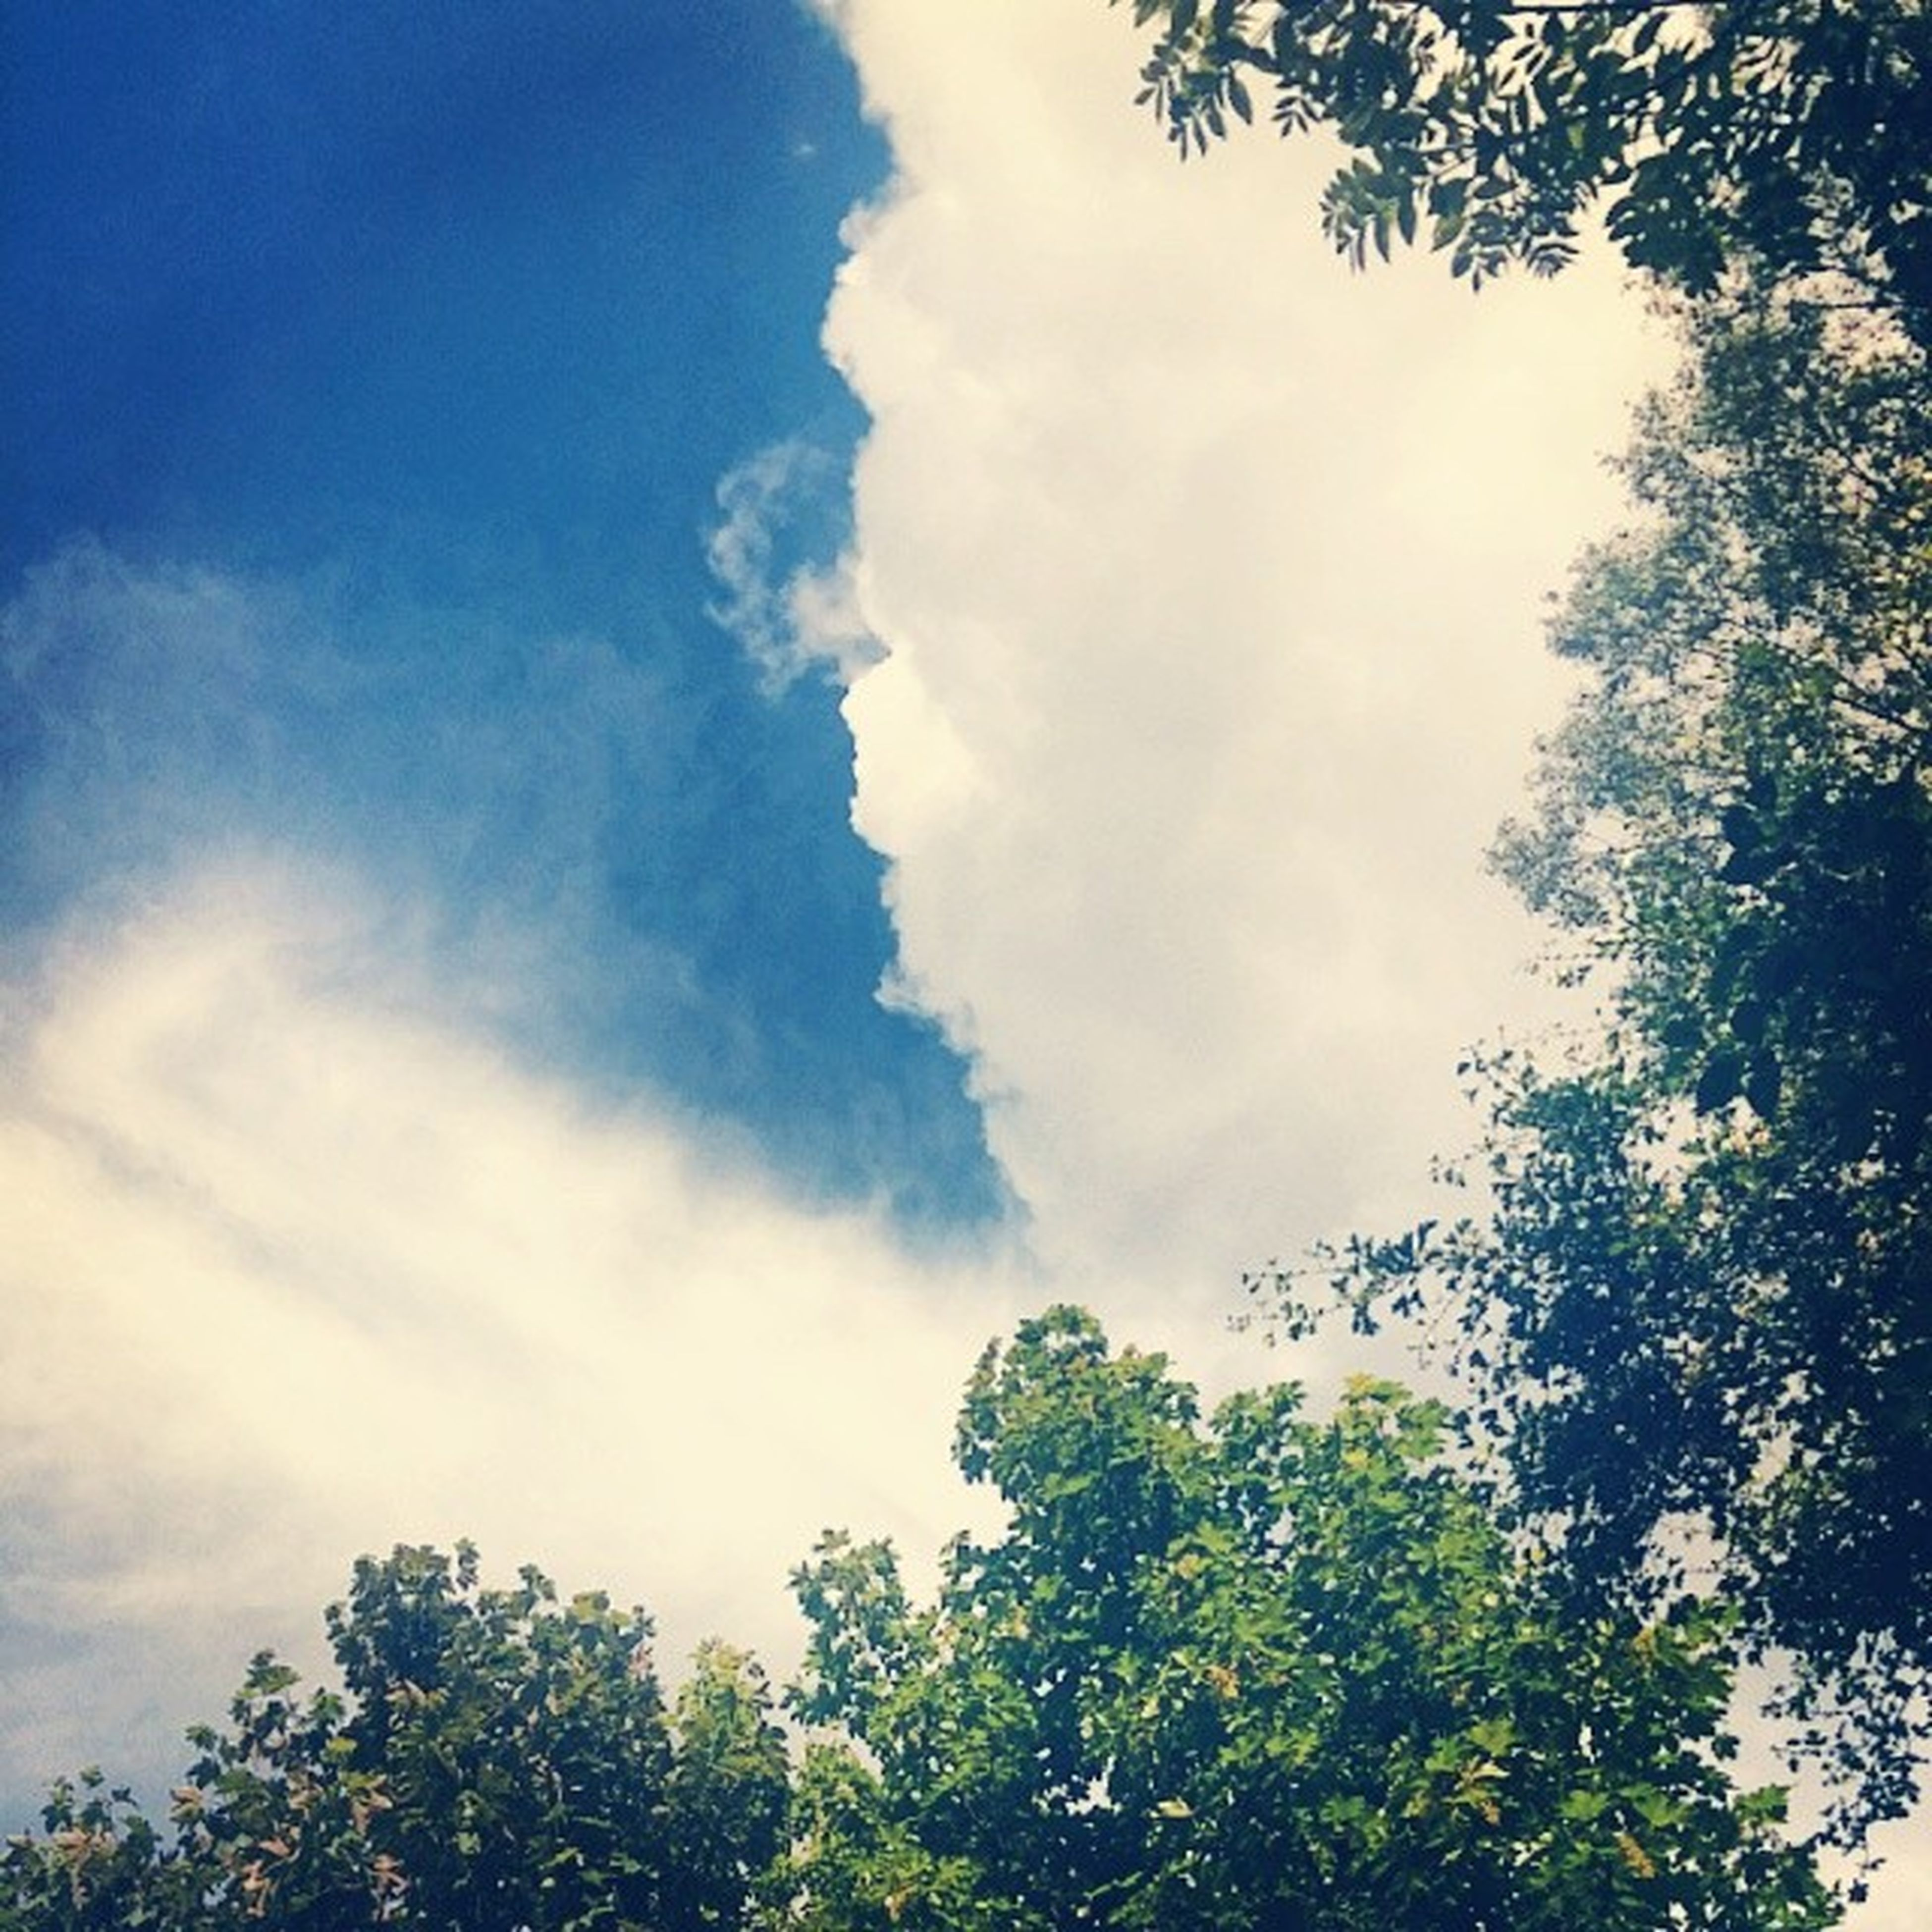 tree, low angle view, sky, growth, tranquility, beauty in nature, nature, cloud - sky, scenics, branch, tranquil scene, high section, cloud, treetop, blue, cloudy, green color, day, outdoors, no people